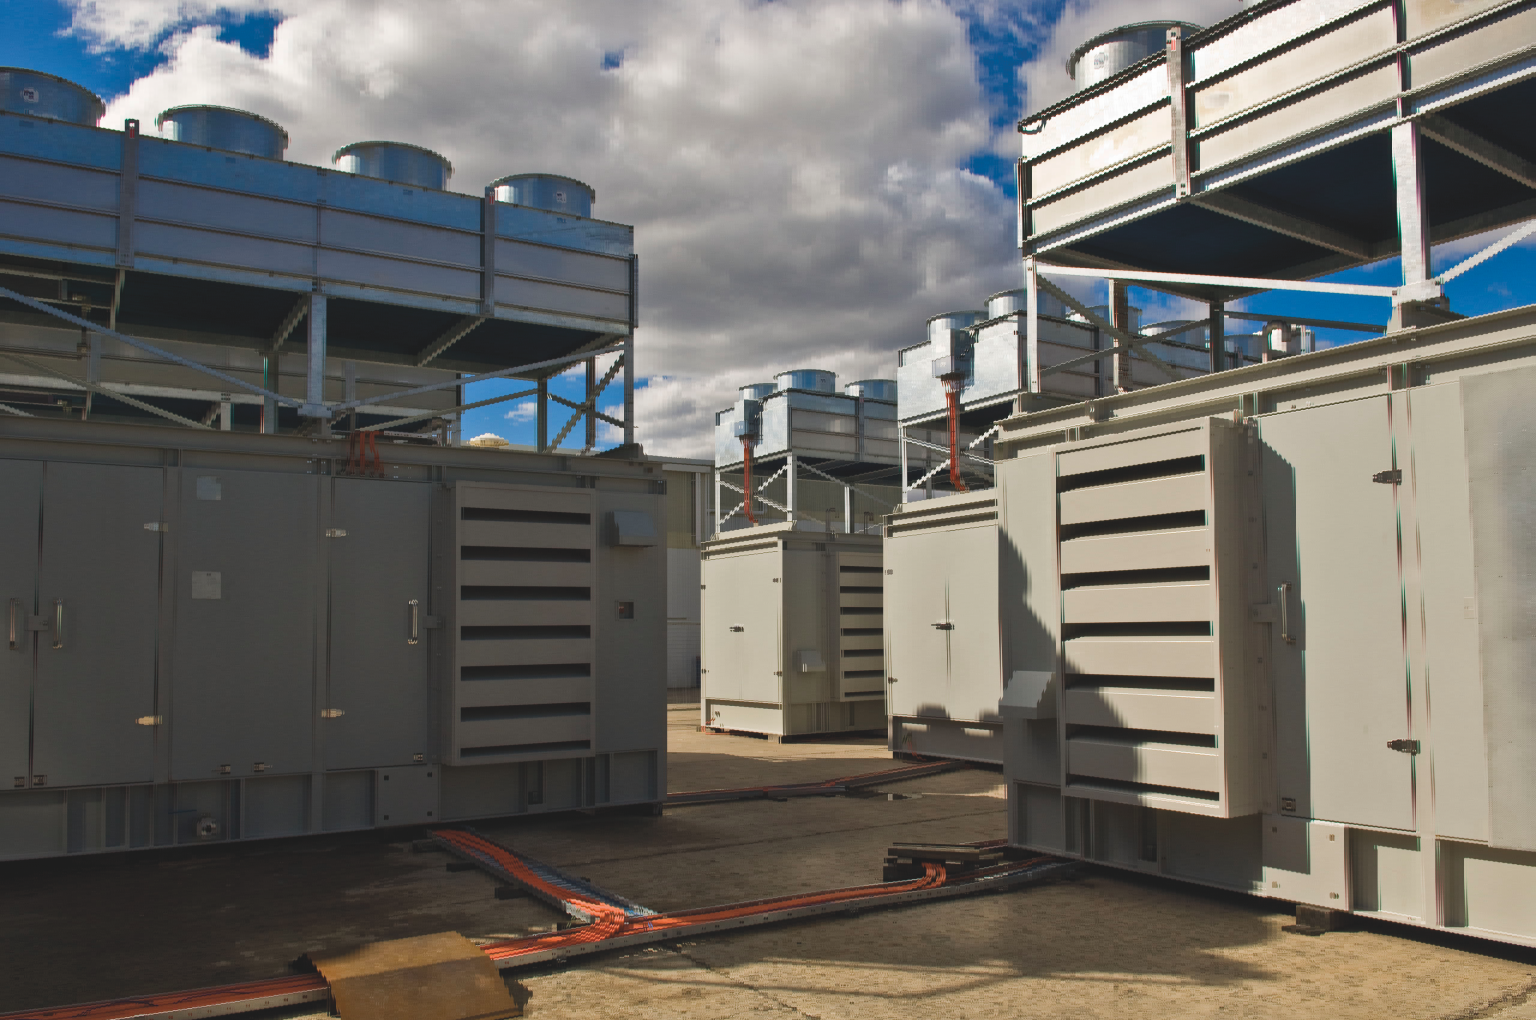 Generating sets ready for shipment to Barrow Island from MPower's Ingleburn facility